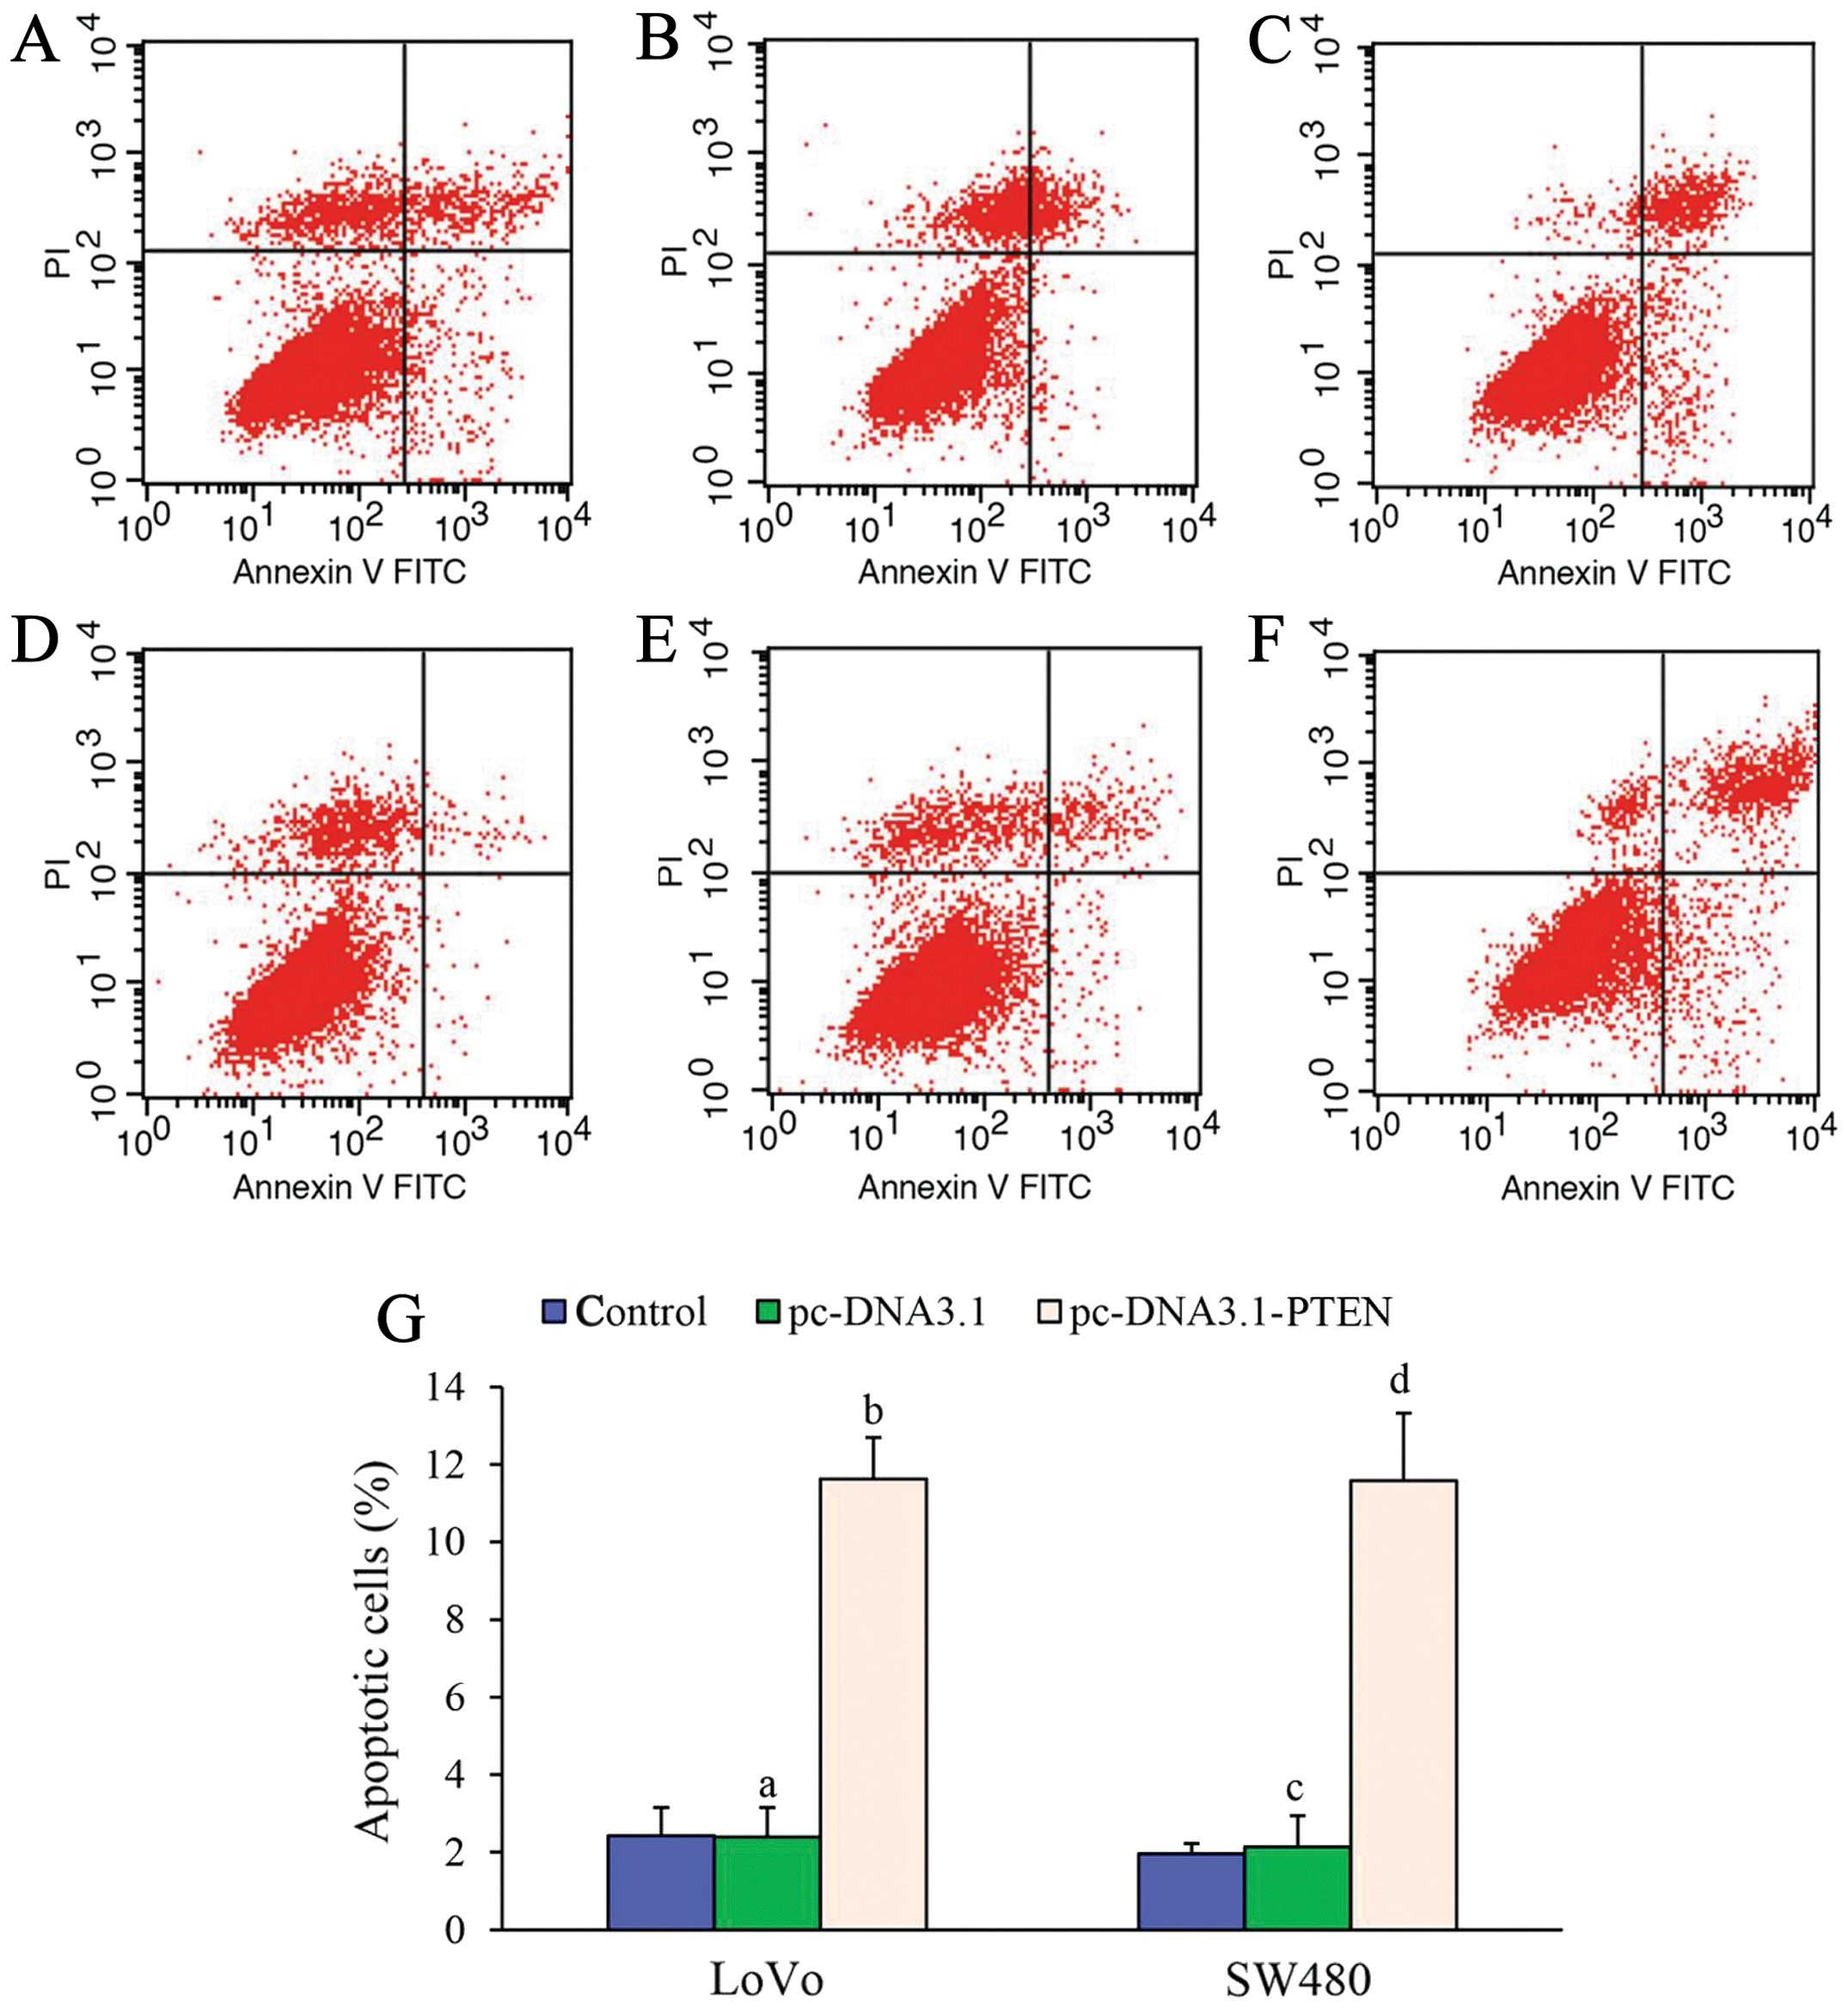 Effects Of Pten On The Proliferation And Apoptosis Of Colorectal Cancer Cells Via The Phosphoinositol 3 Kinase Akt Pathway